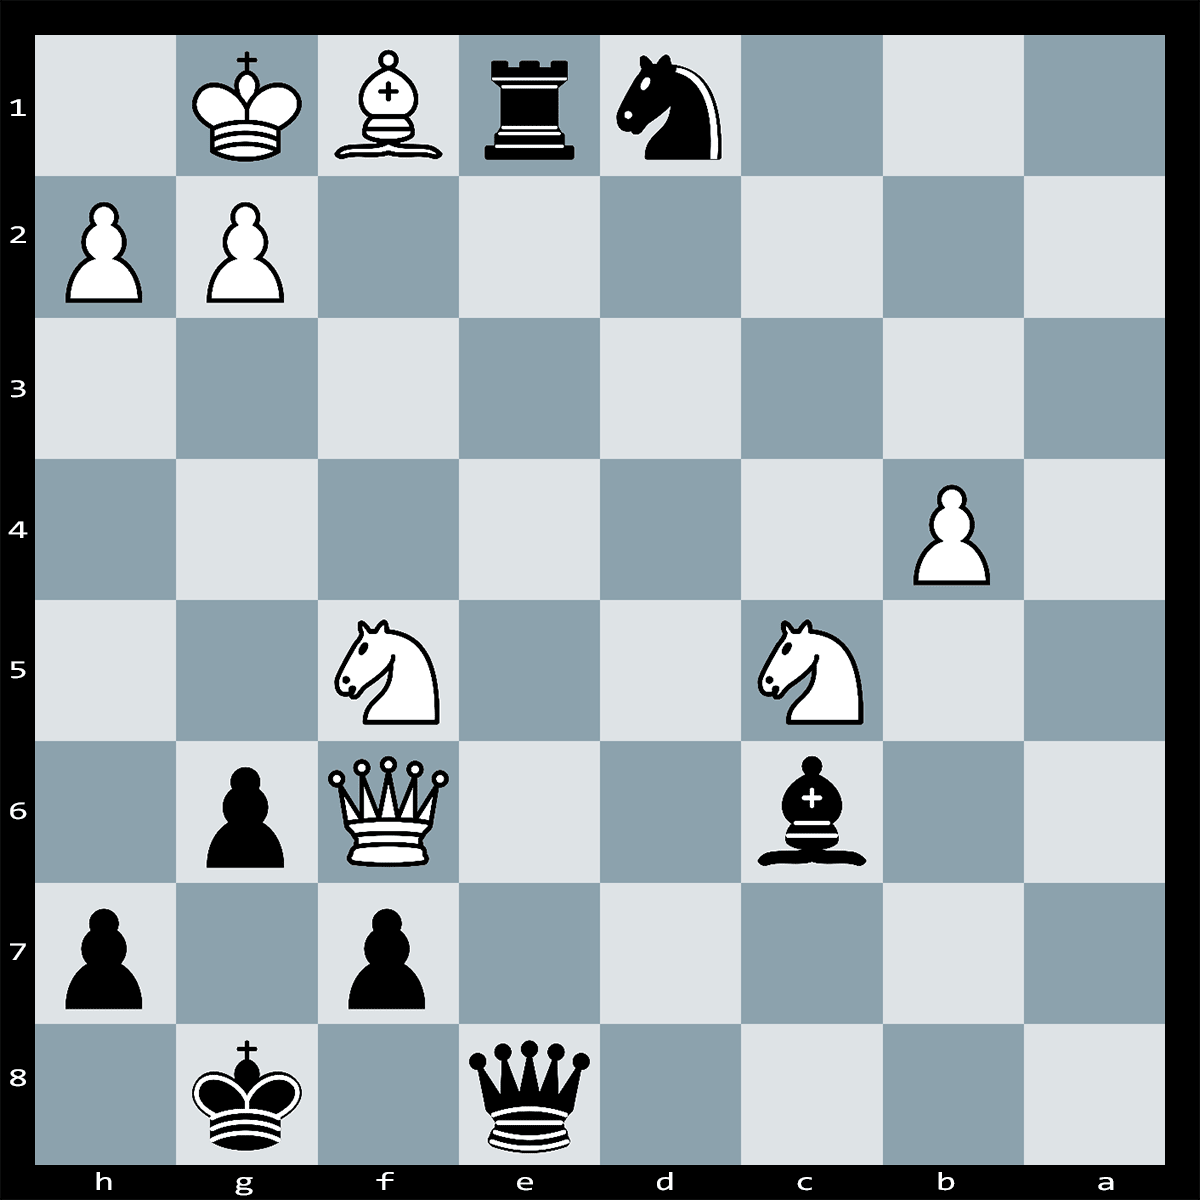 Chess Puzzle #329 | Black is unstoppable here. It should not take more than four moves to finish the game.